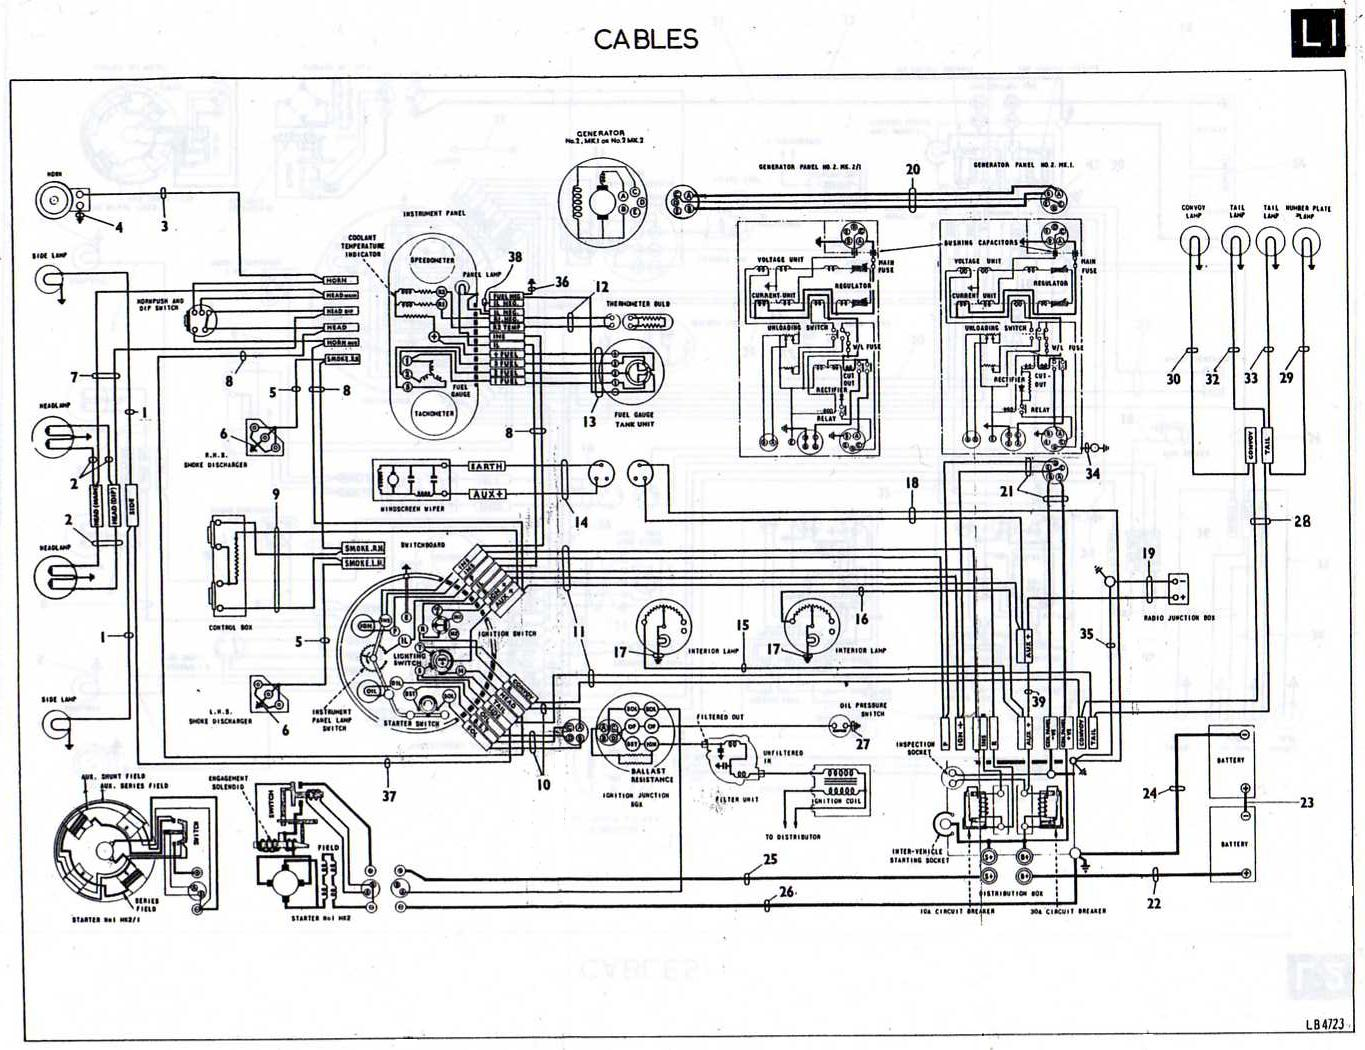 switchboard wiring diagram low voltage lighting daimler ferret electrical equipment